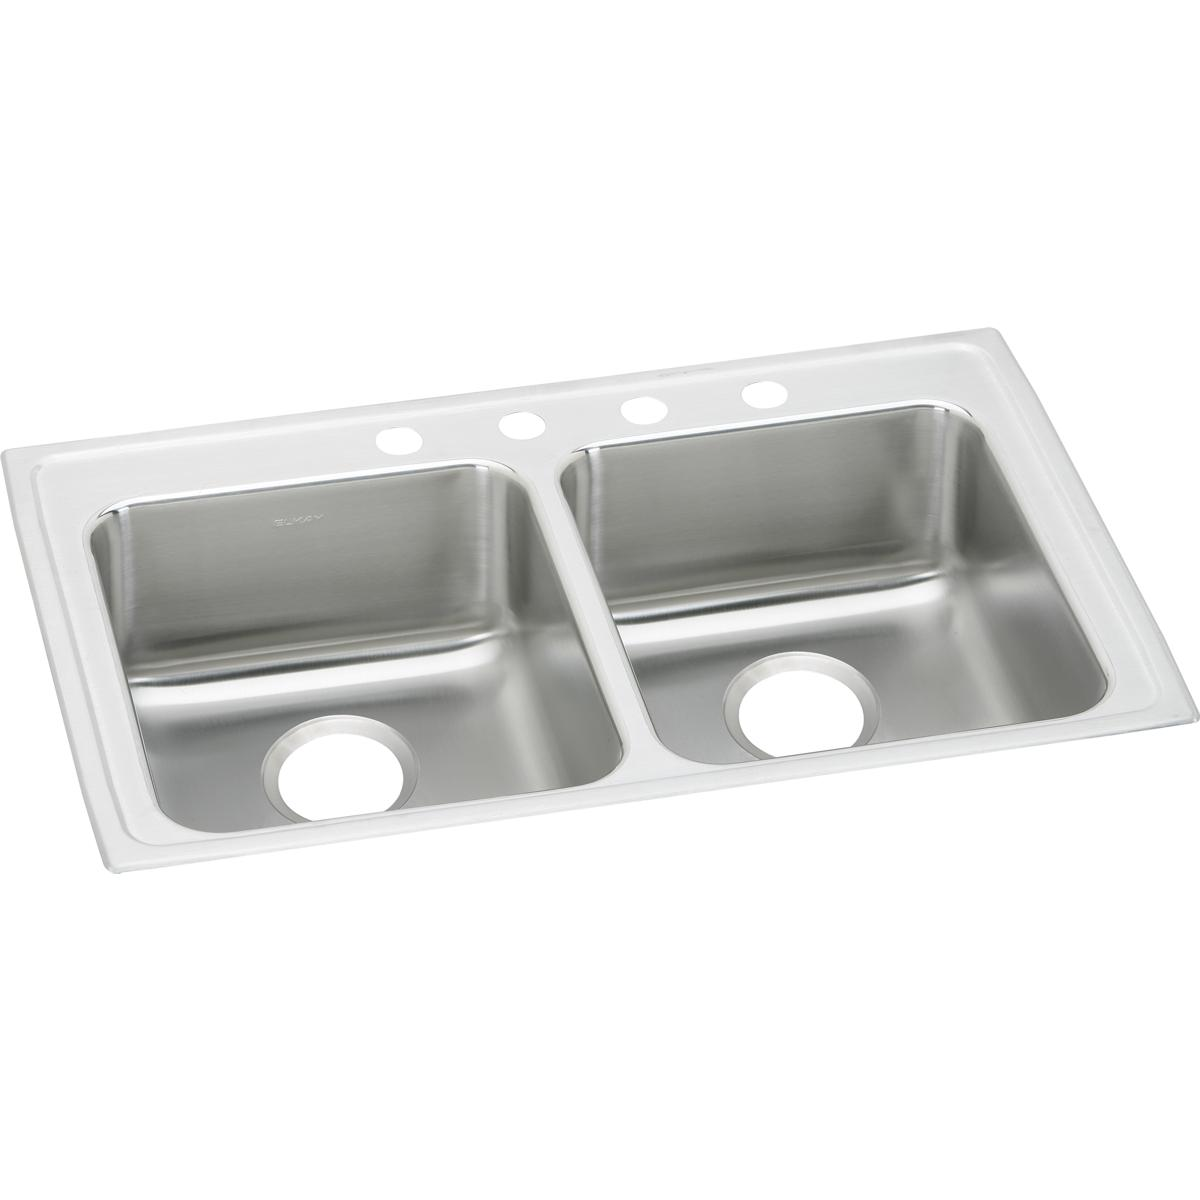 "Elkay Lustertone Classic Stainless Steel 33"" x 21-1/4"" x 6"", Equal Double Bowl Drop-in ADA Sink"